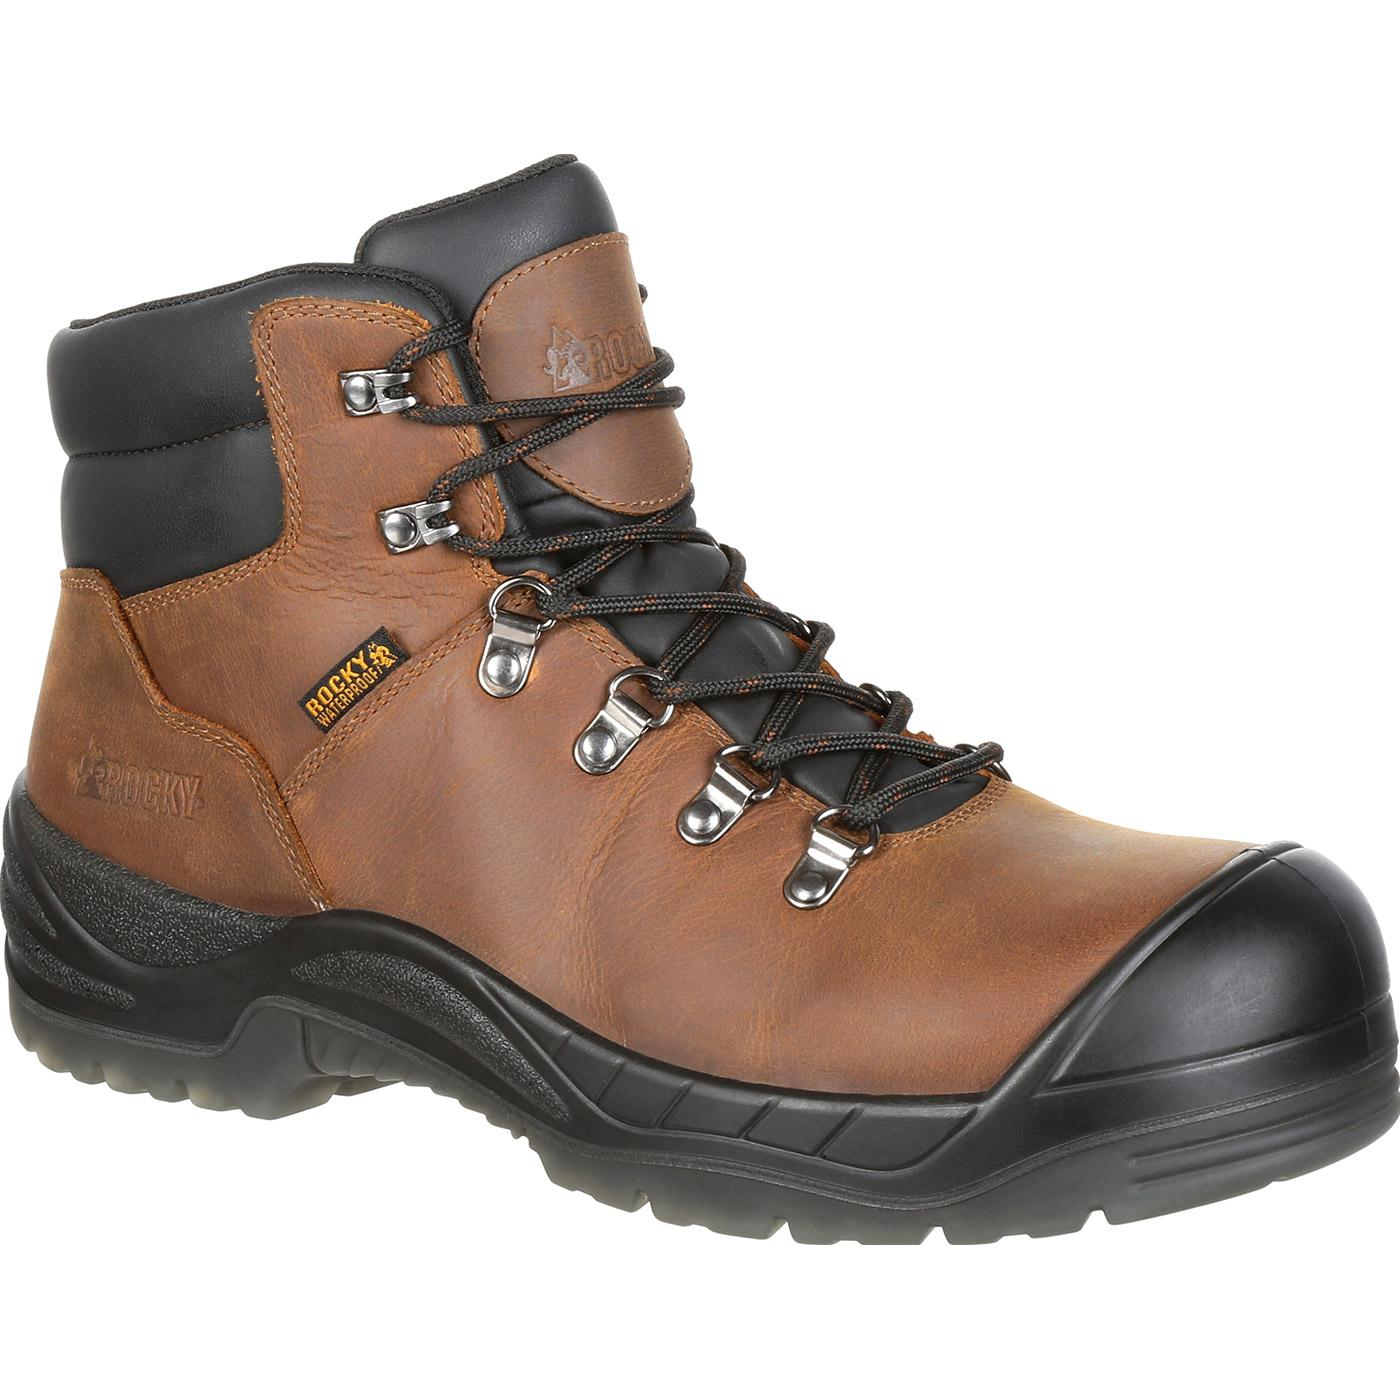 Rocky - Worksmart Composite Toe Waterproof Work Boot-Rocky Boots